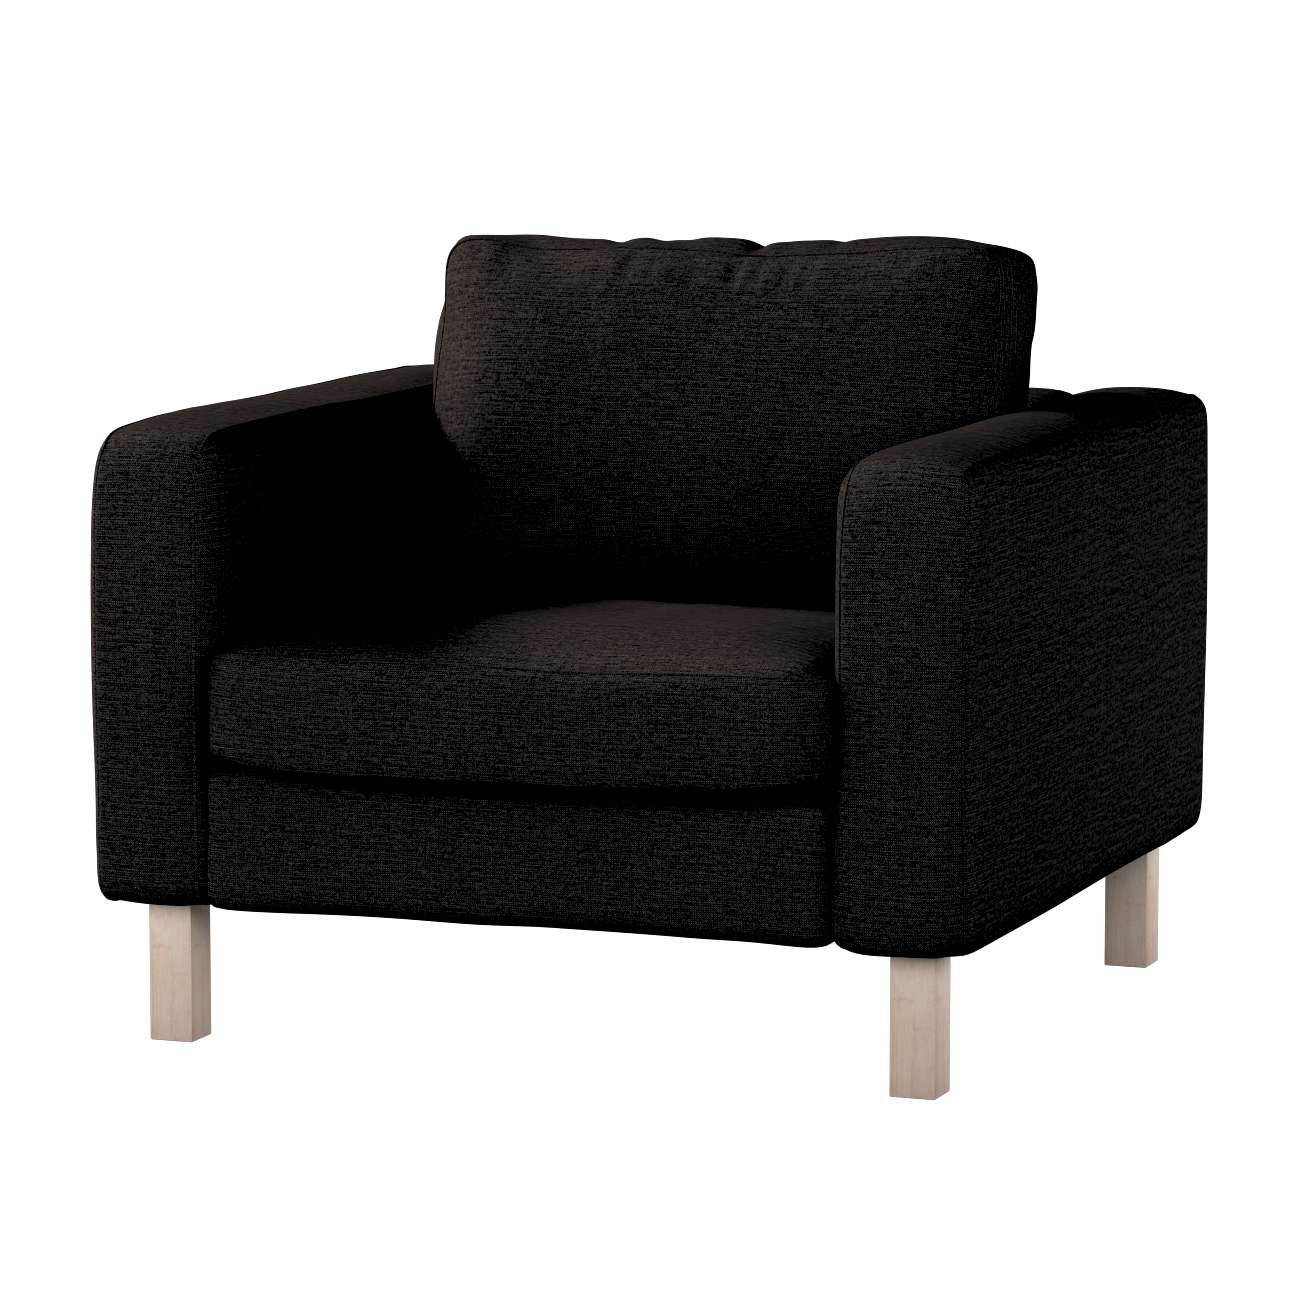 Karlstad armchair cover Karlstad armchair cover in collection Madrid, fabric: 105-17